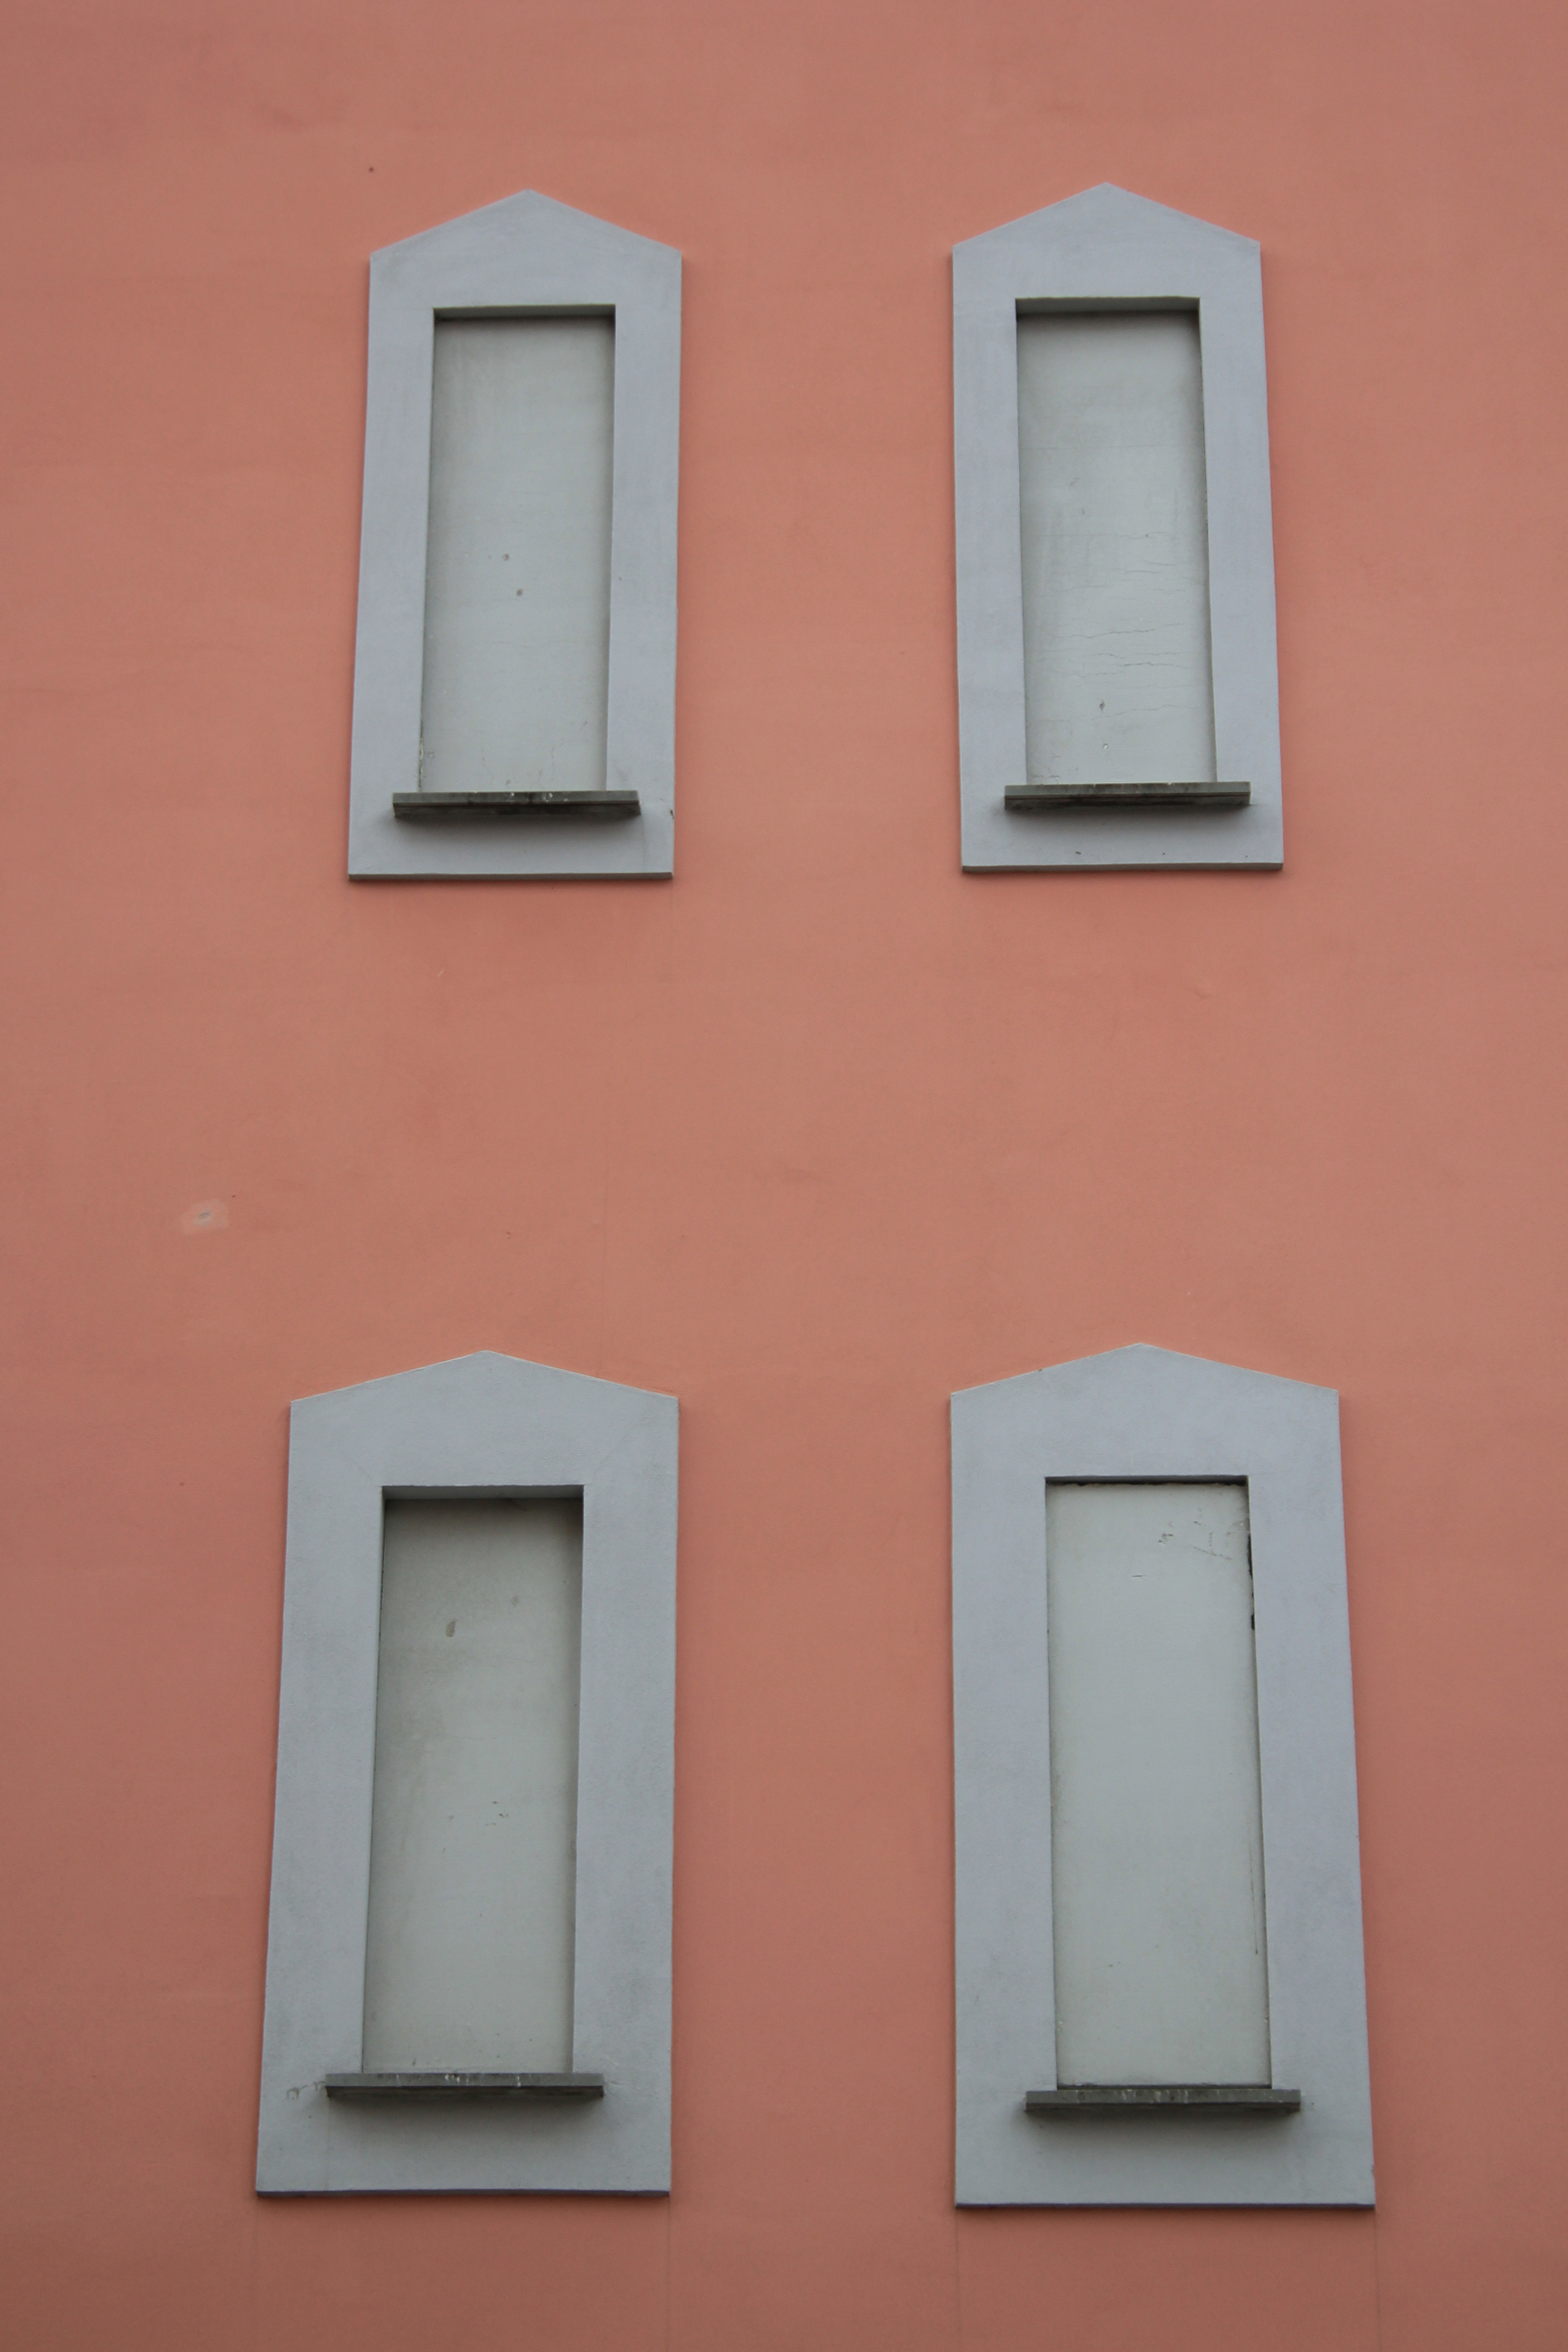 Bologna Italy Pink Building Grey Windows